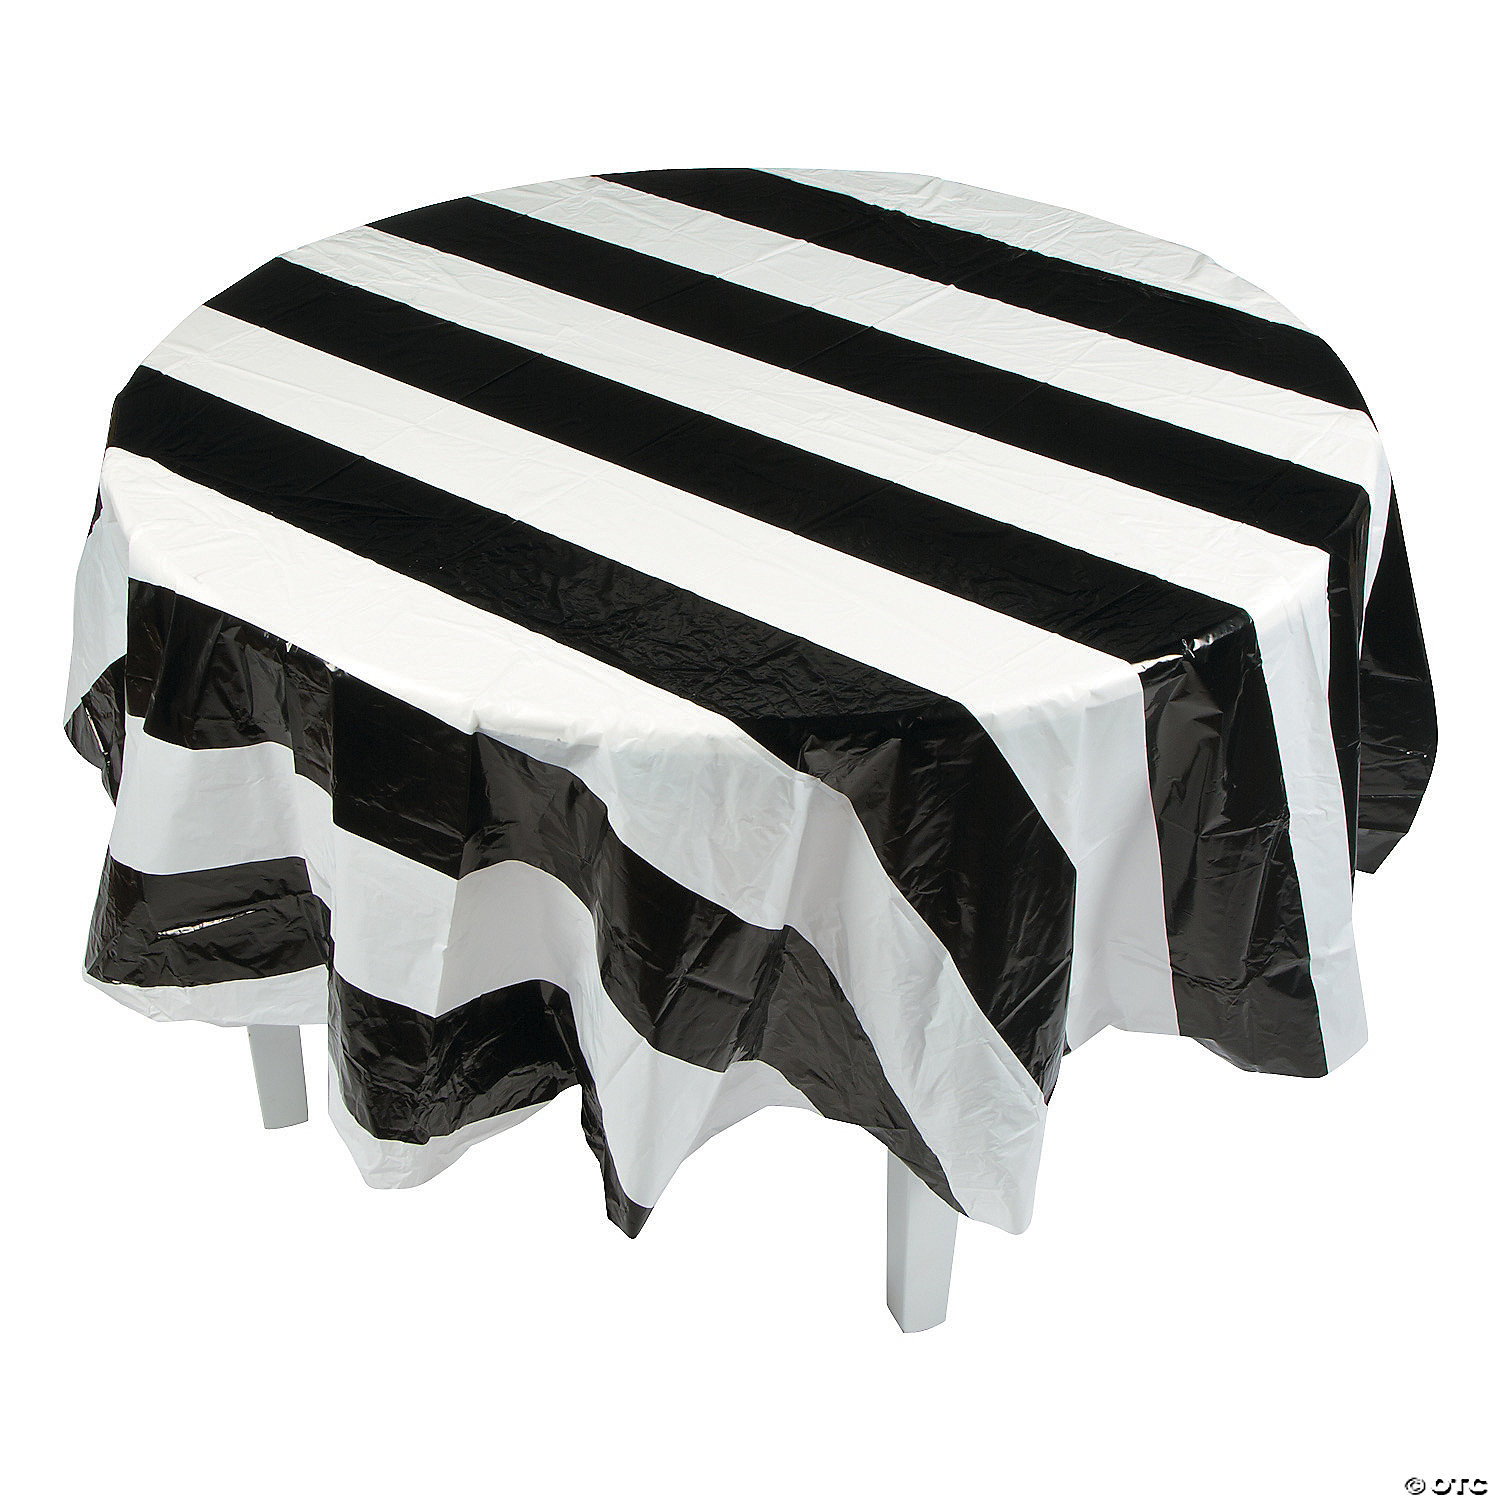 Gentil Black And White Stripe Round Plastic Tablecloth